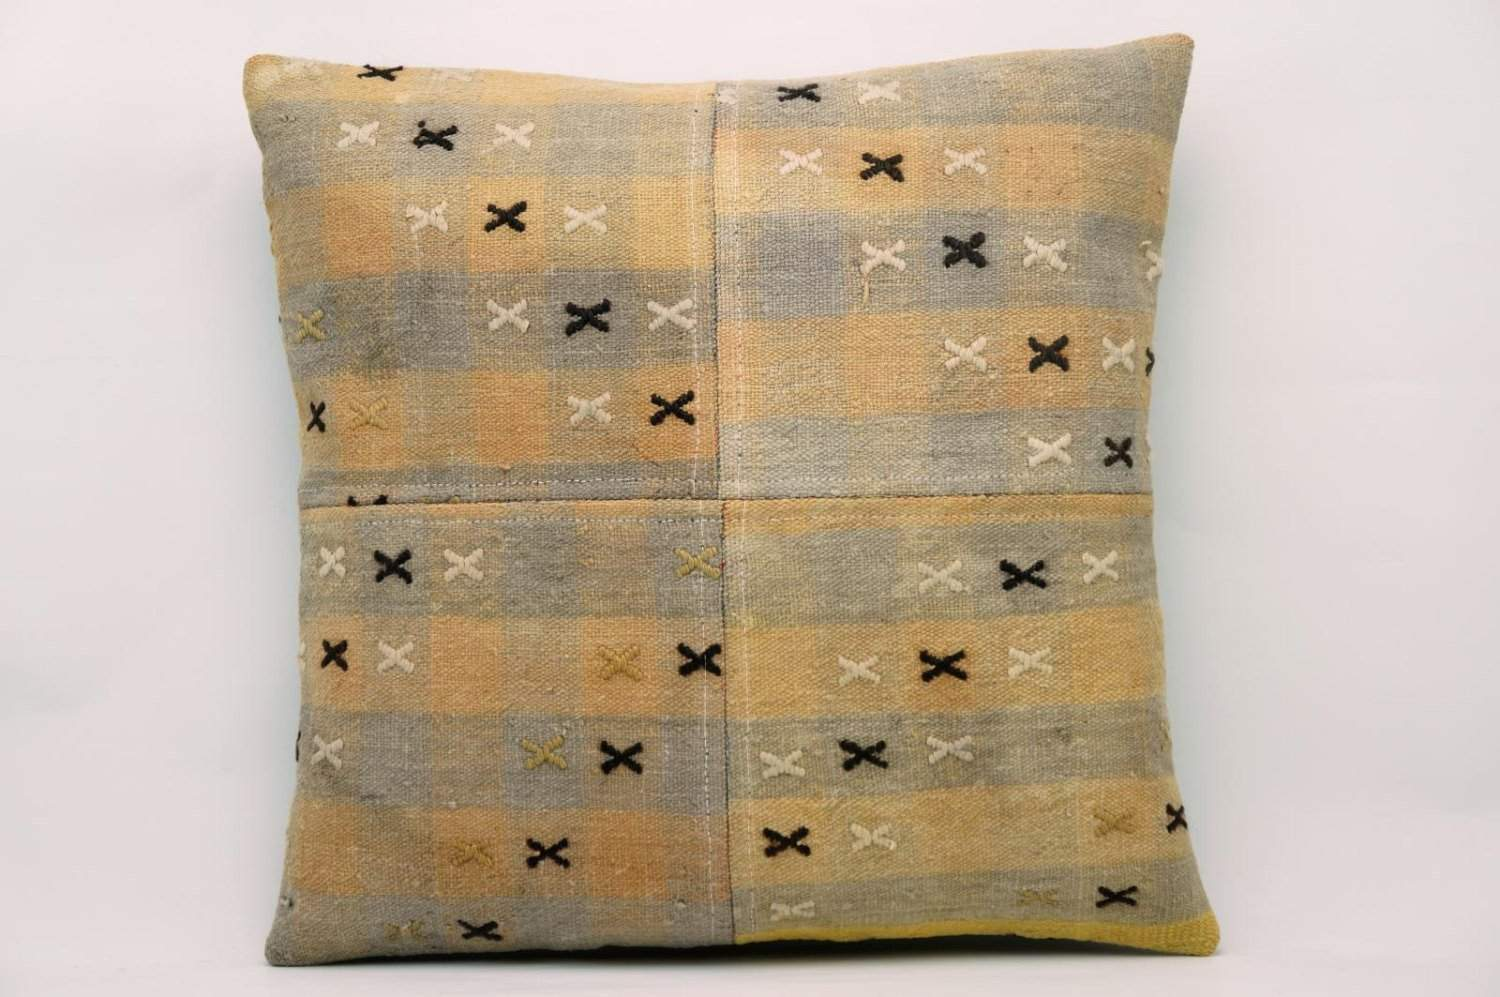 CLEARANCE 16x16 Vintage Hand Woven Kilim Pillow 624 gray, pinkish orange, checkered, cream black cross, faded